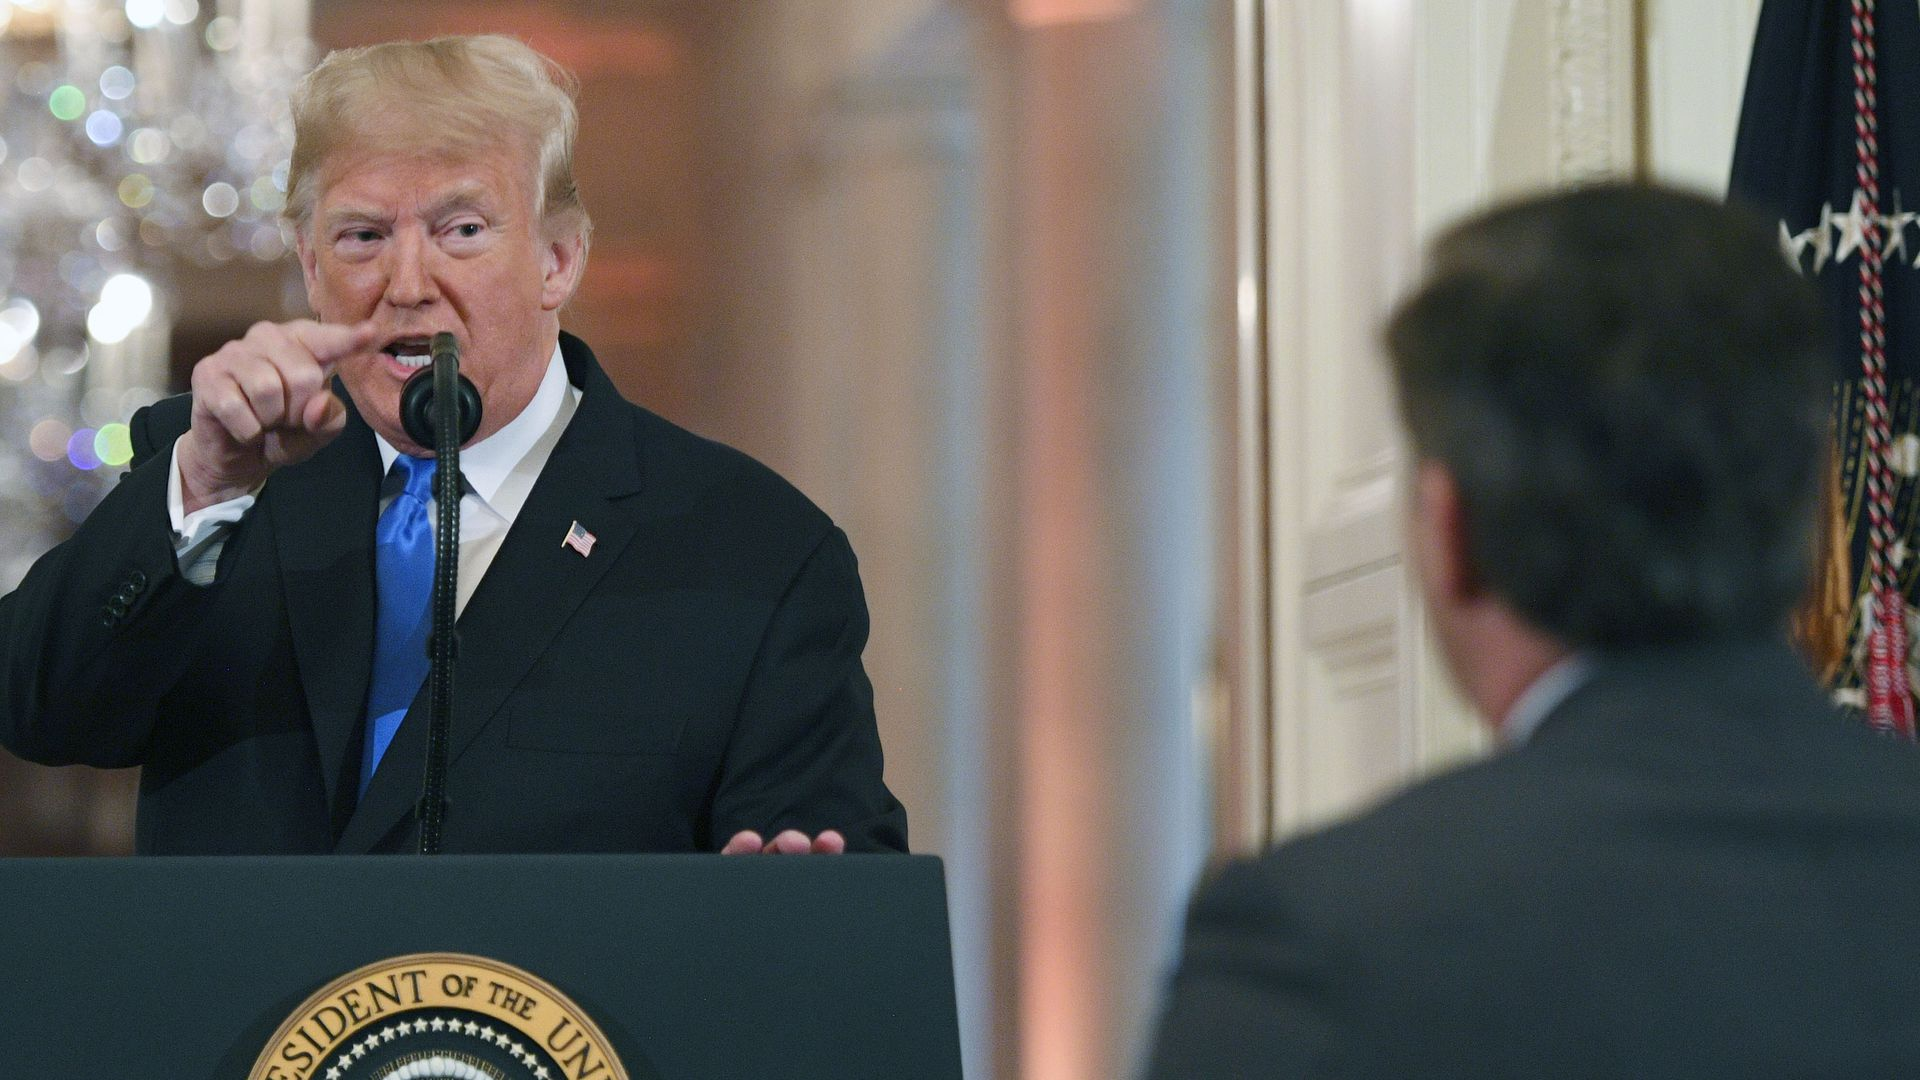 President Donald Trump points to journalist Jim Acosta from CNN during a post-election press conference